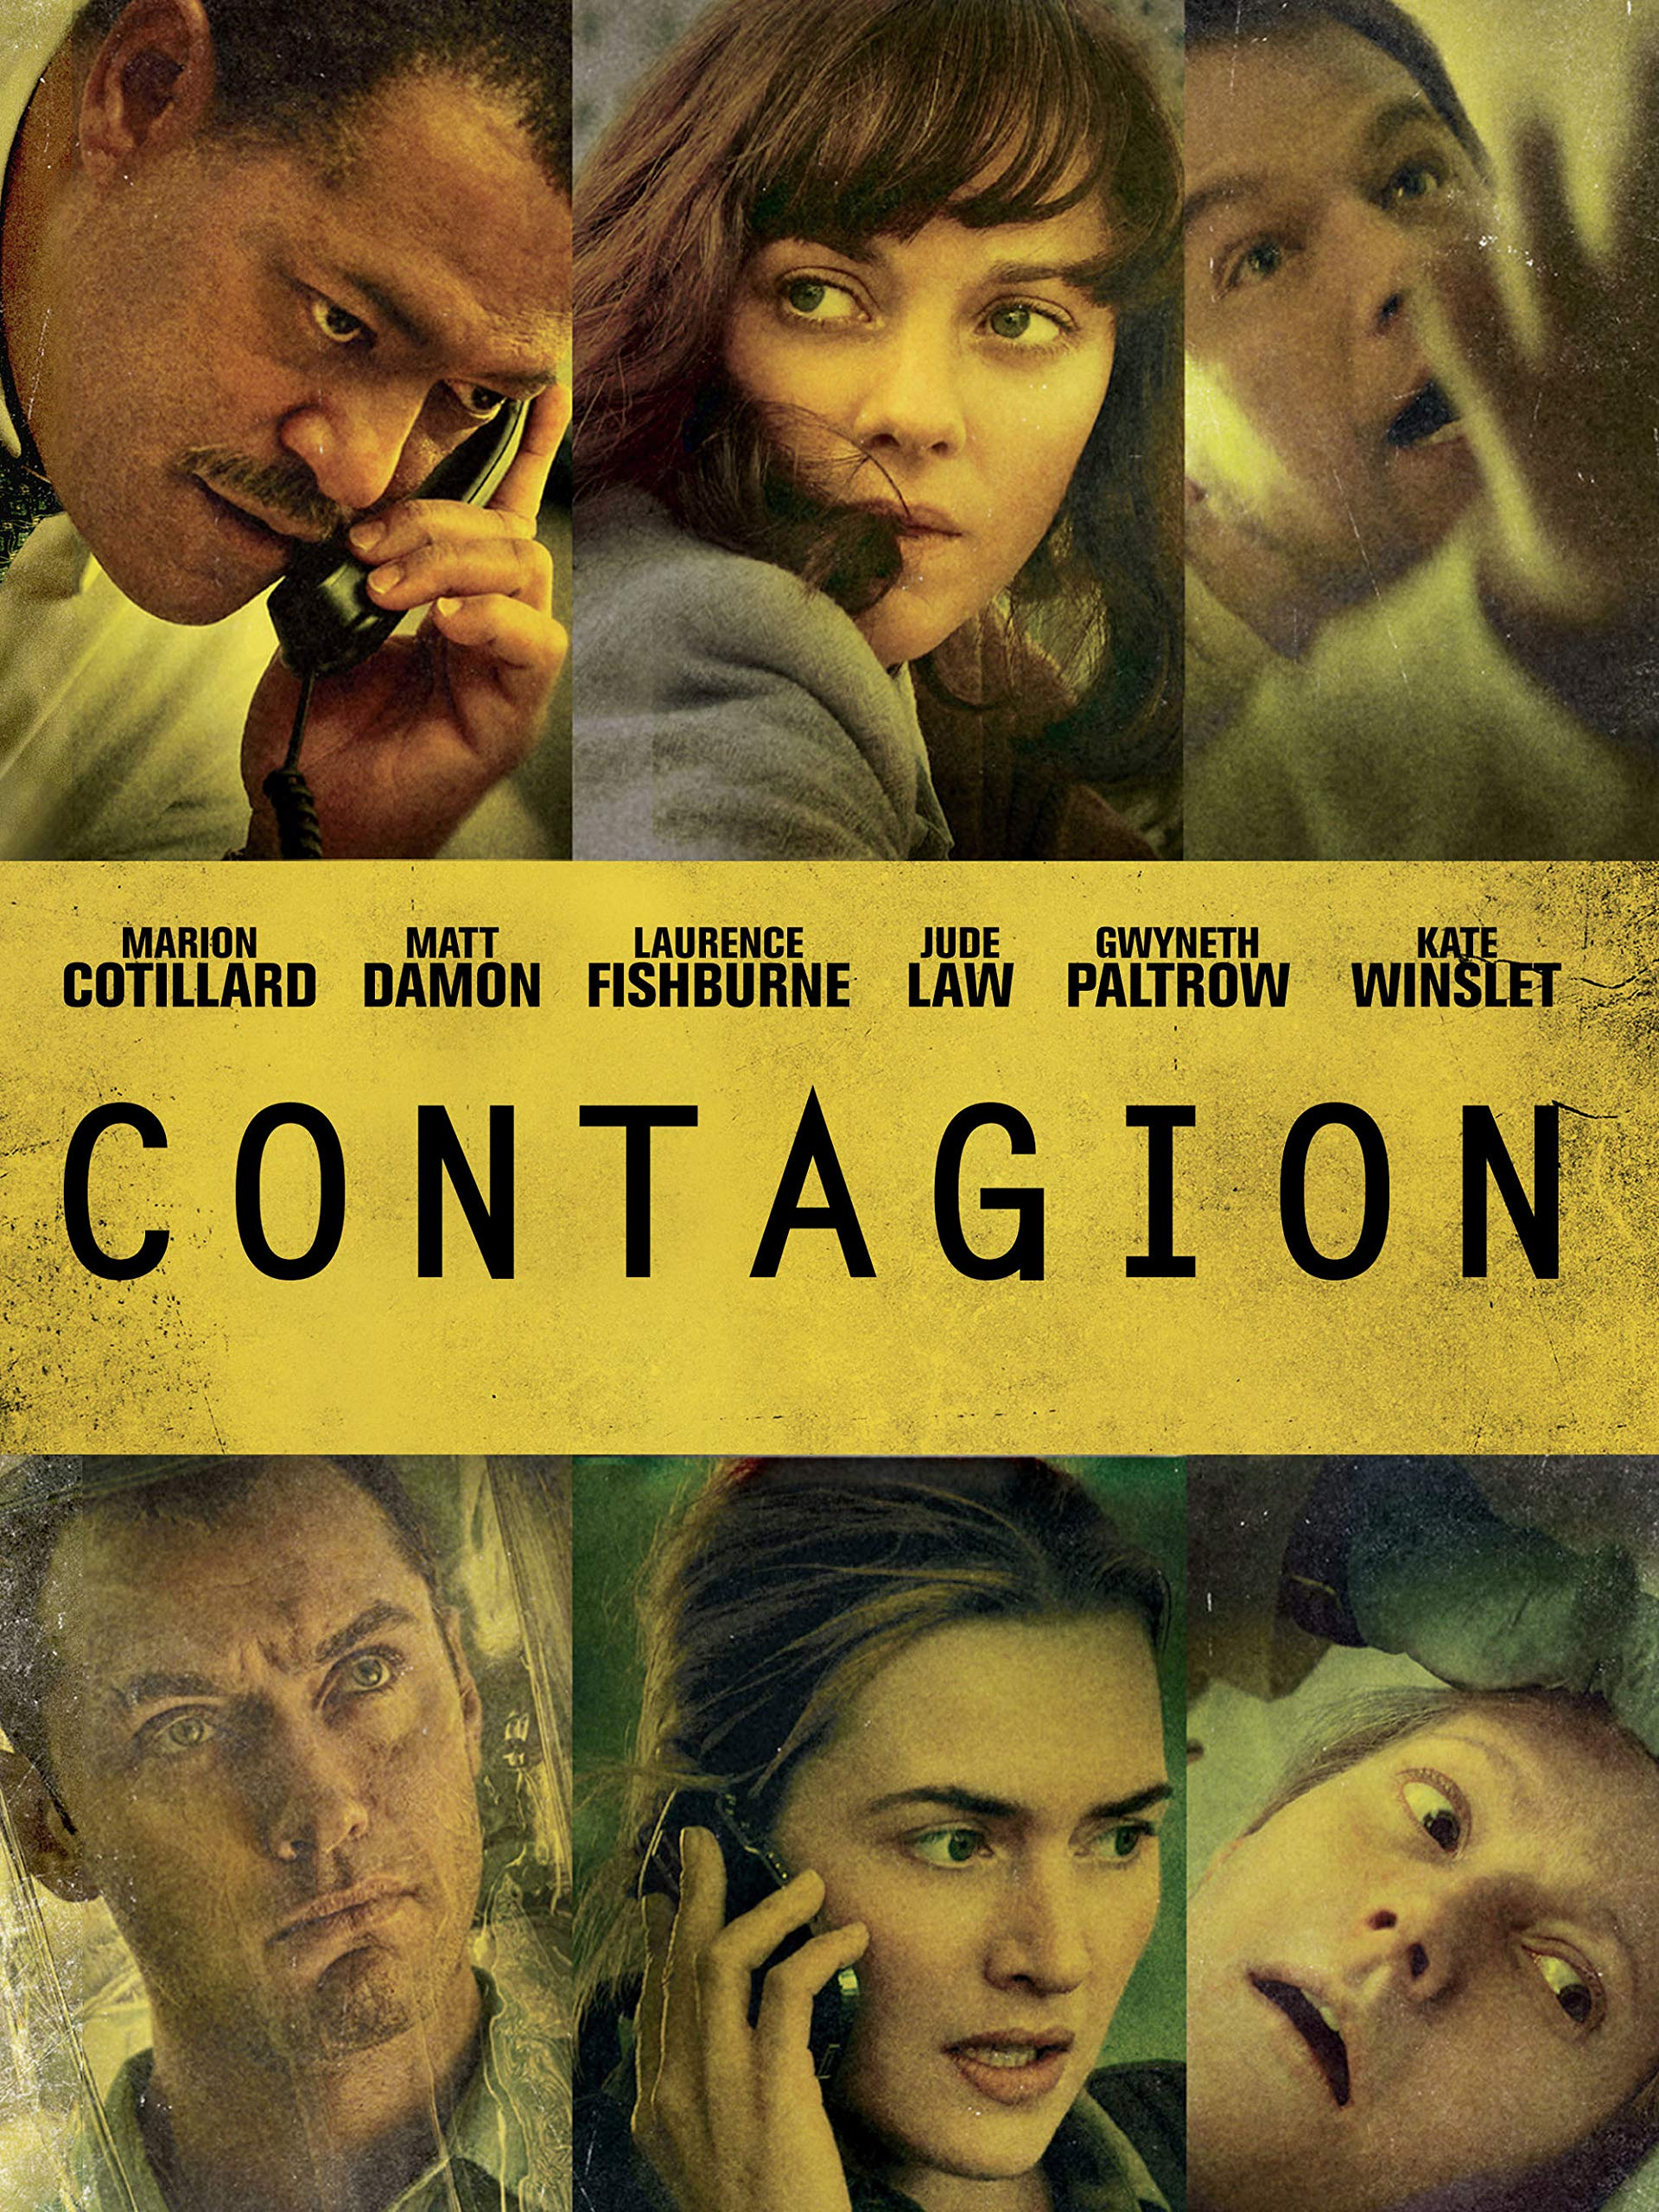 Watch Contagion (2011) | Prime Video